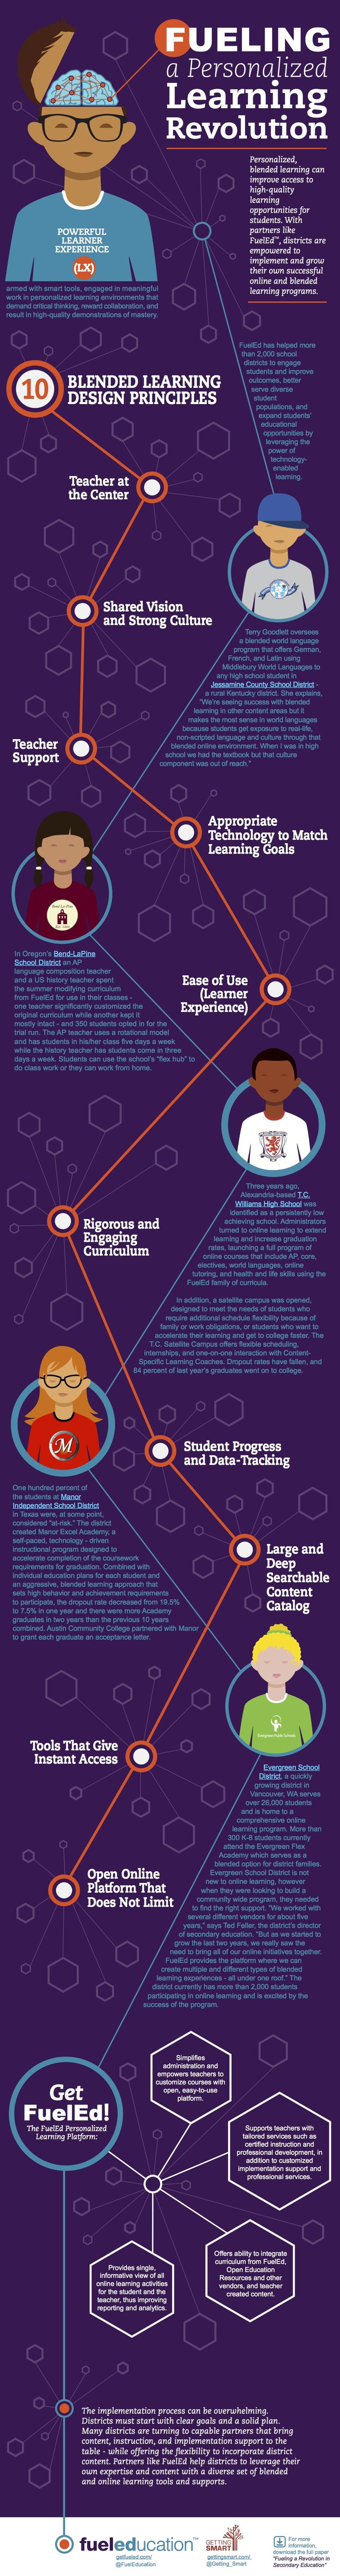 Infographic: Fueling a Personalized Learning Revolution - Getting Smart by Getting Smart Staff - blended learning, EdTech, getfueled, person...